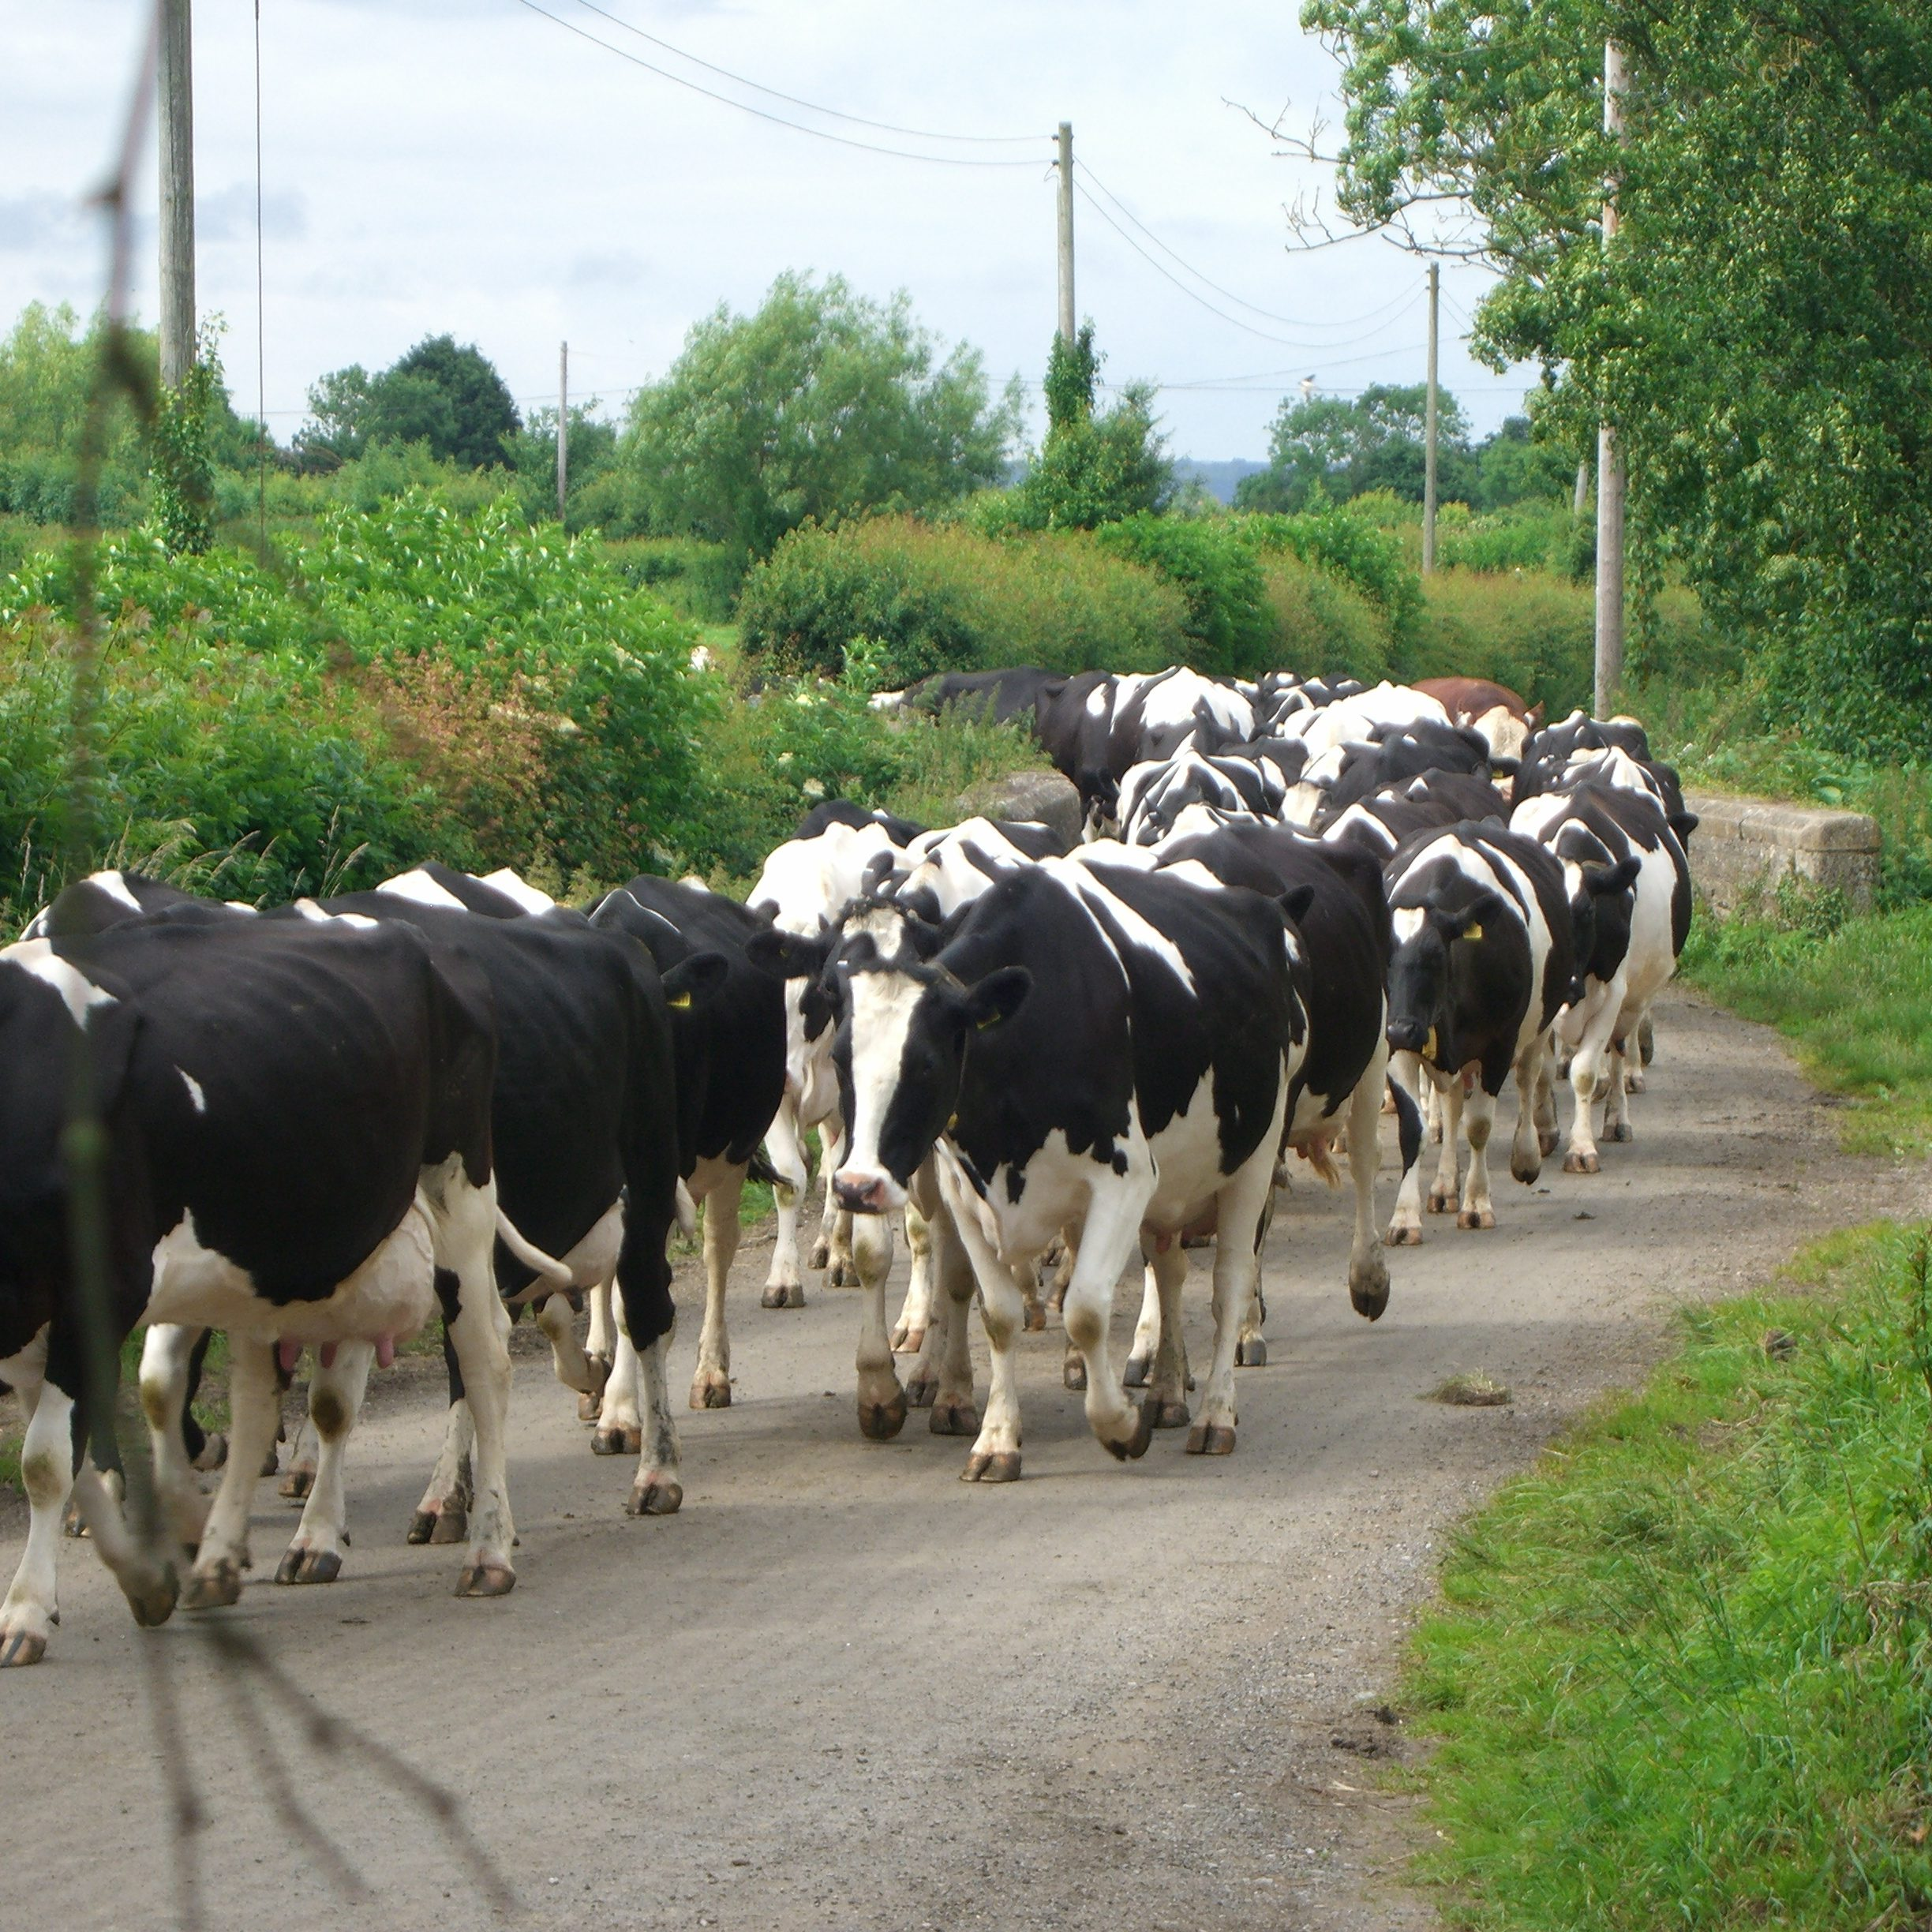 On the way to milking